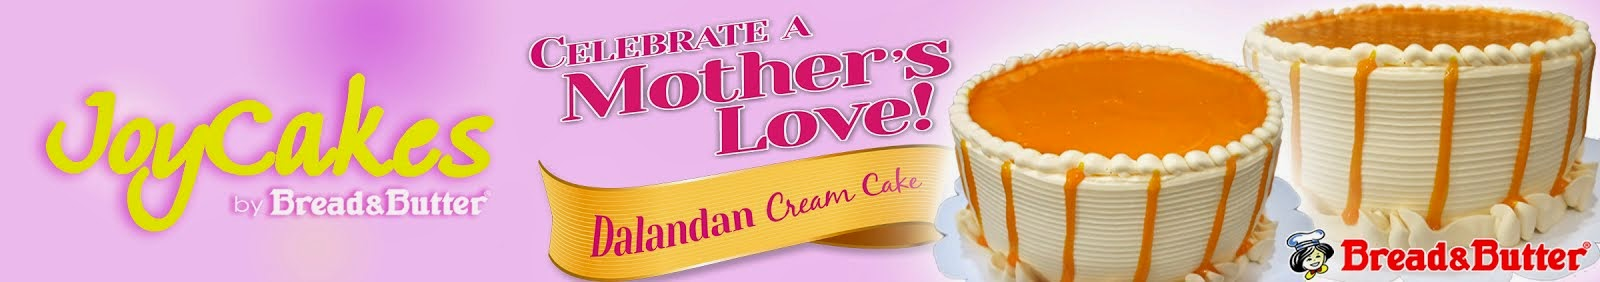 Joycakes by Bread & Butter Celebrates A Mothers Love!